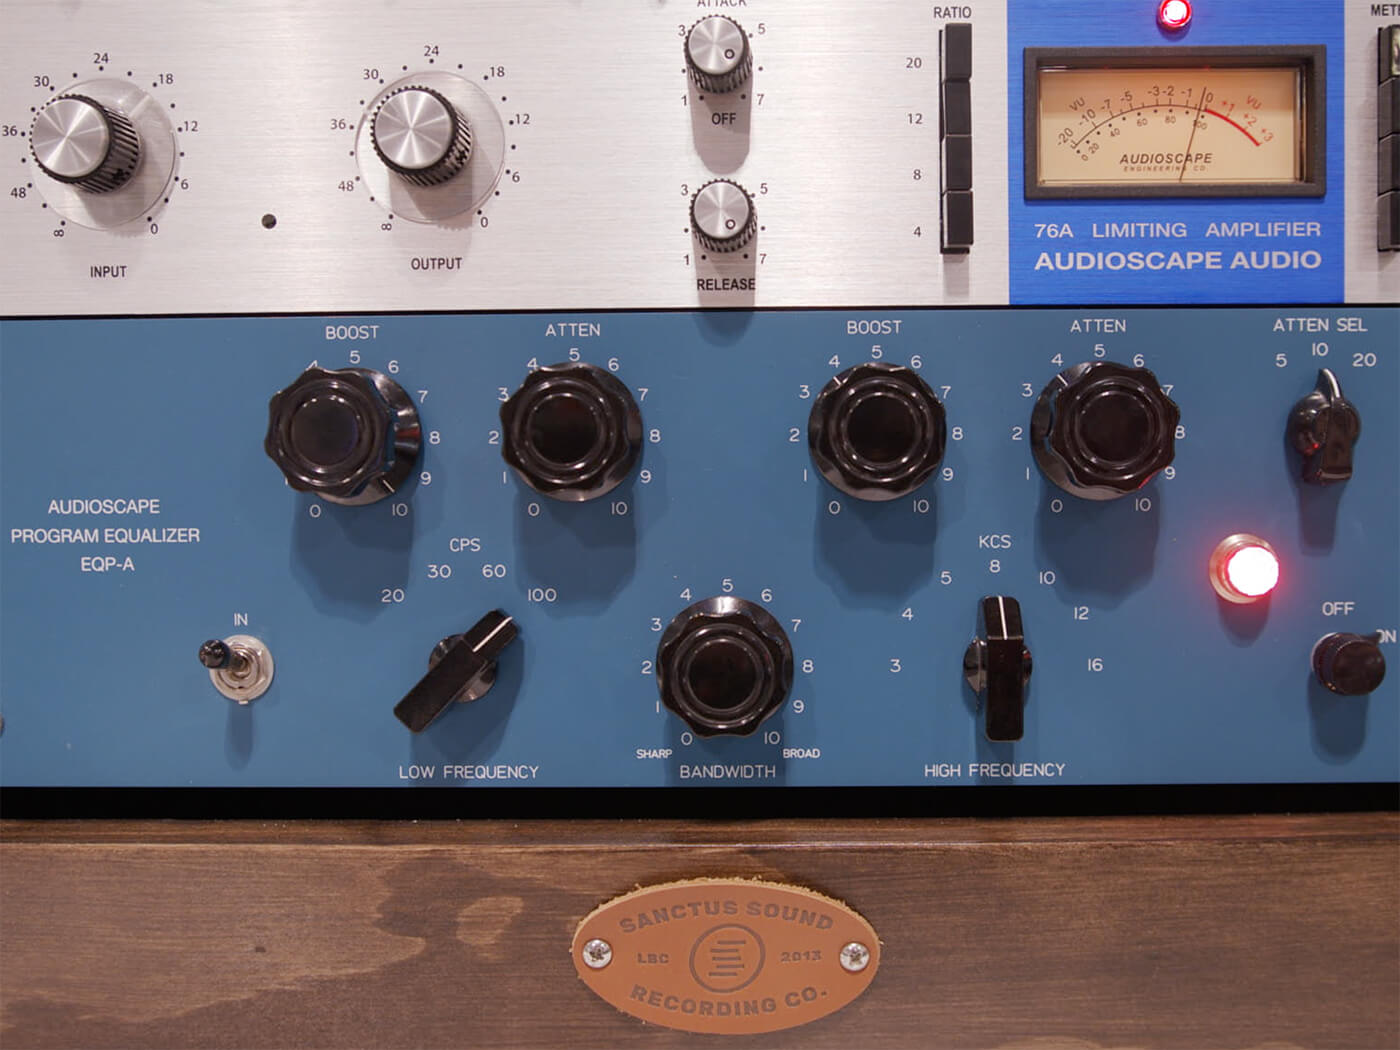 Summer NAMM 2019 Video: Audioscape Engineering's EQP-A Pultec recreation is made in the USA